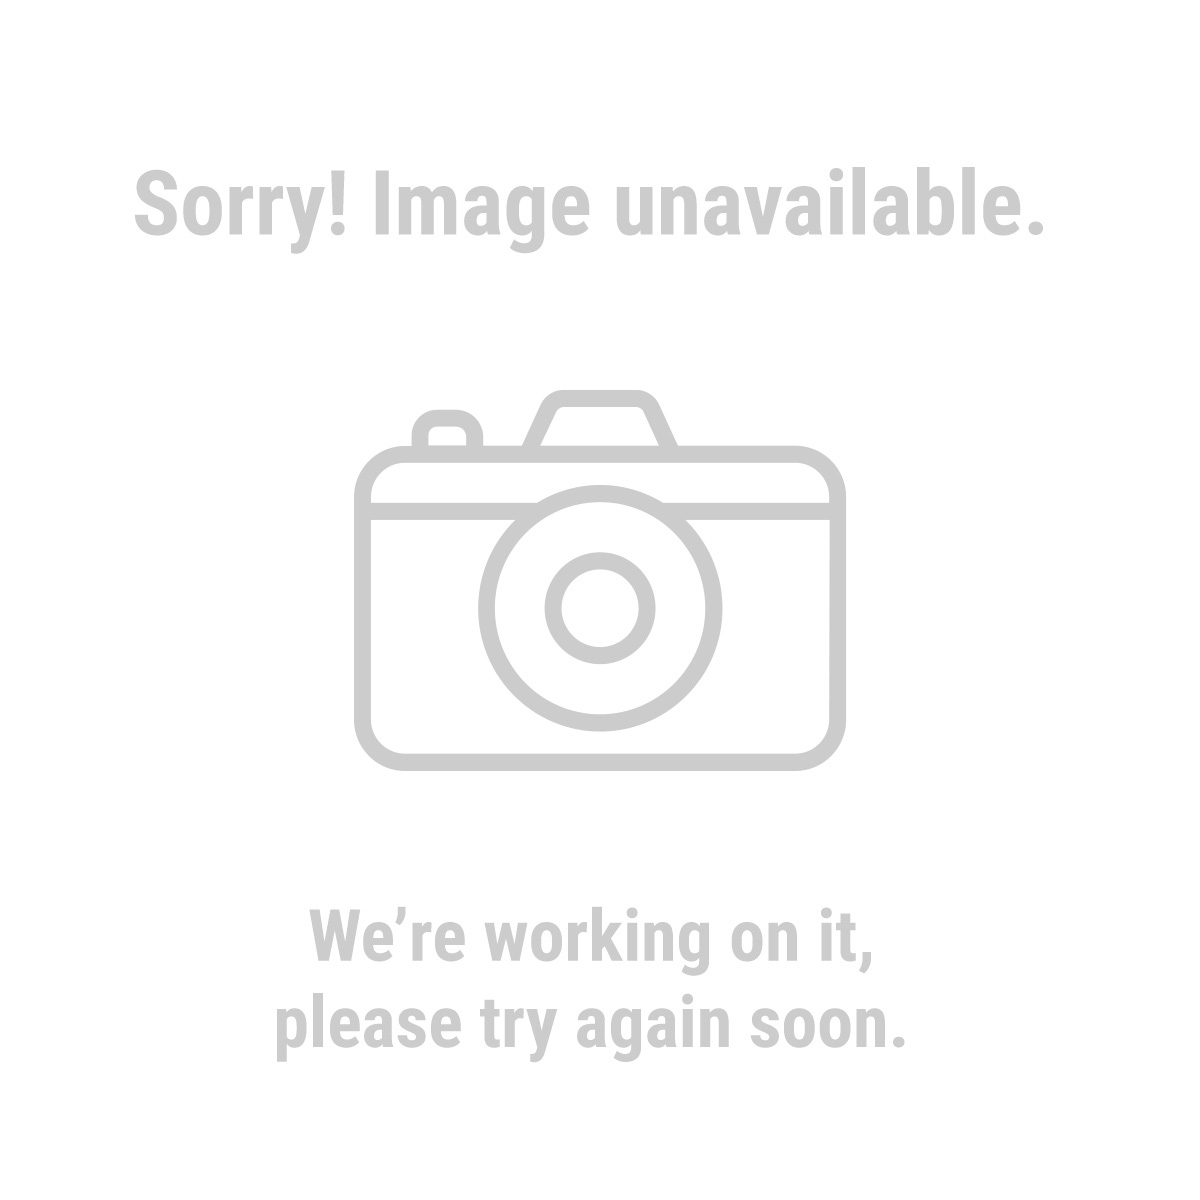 1 Ton Manual Chain Hoist Half Ton Dayton Chain Hoist Wiring Diagram on